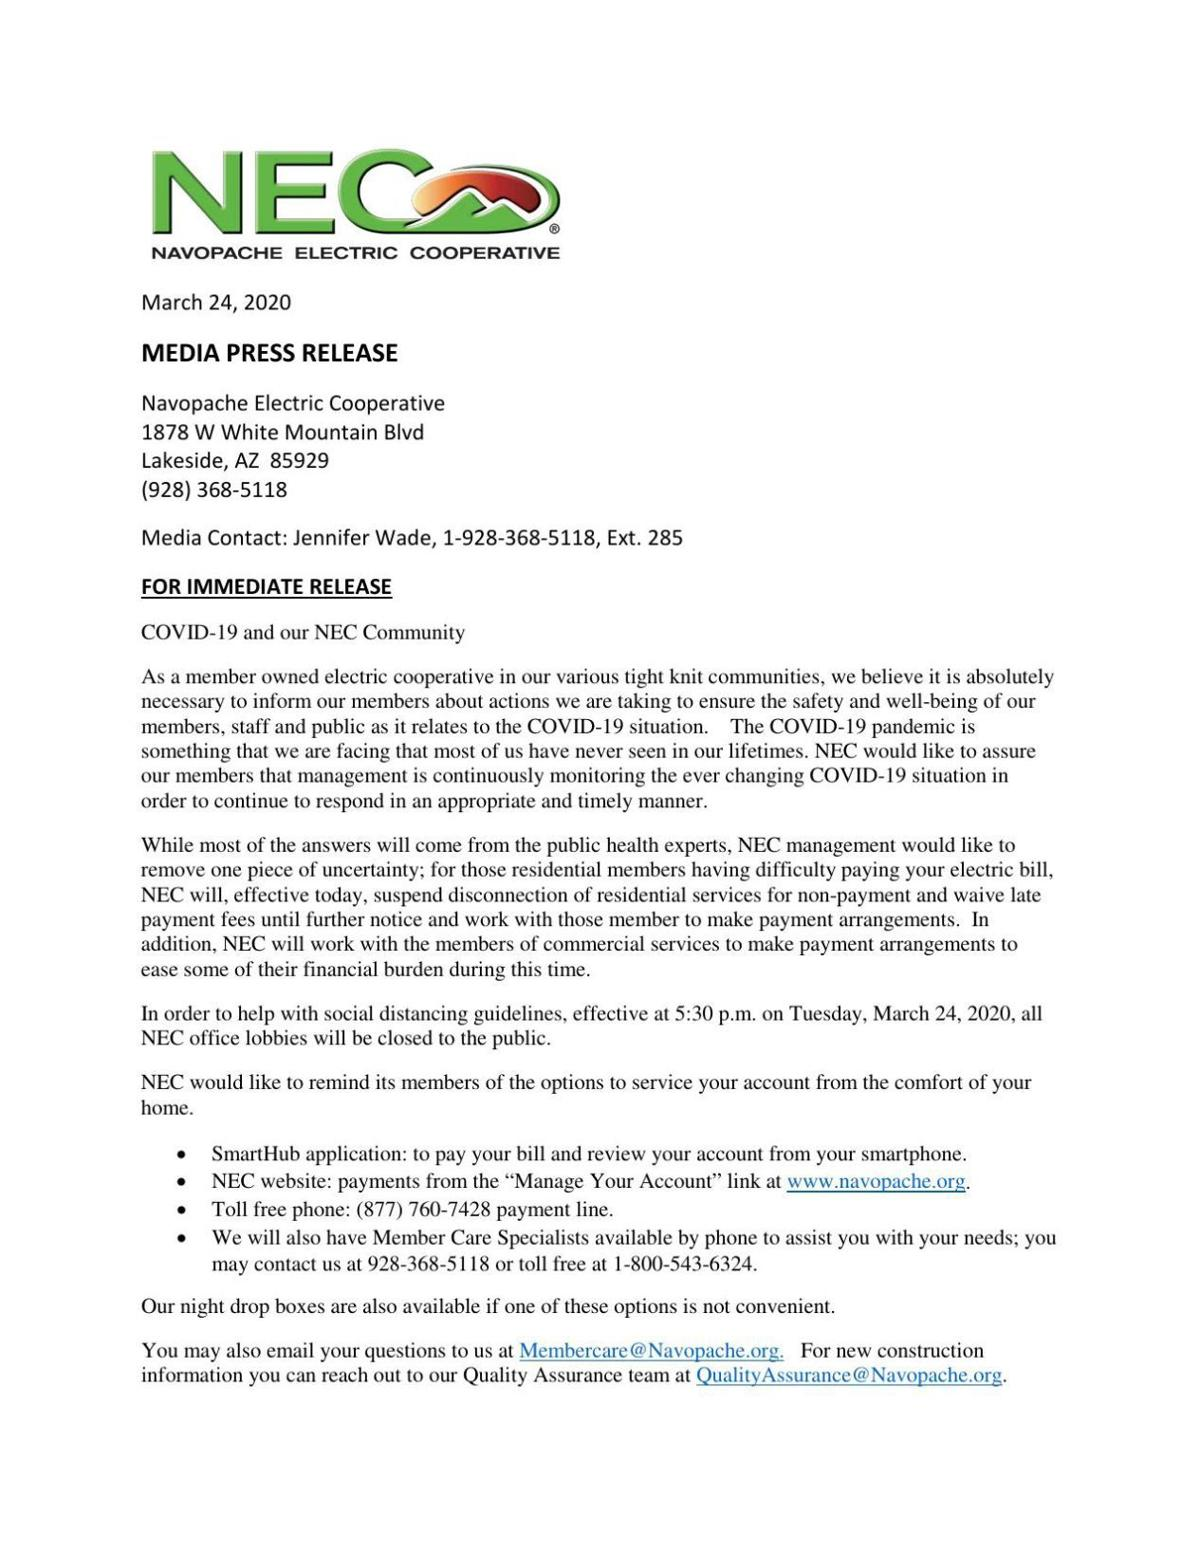 Navopache Electric Coop -Letter from CEO 3/24/20